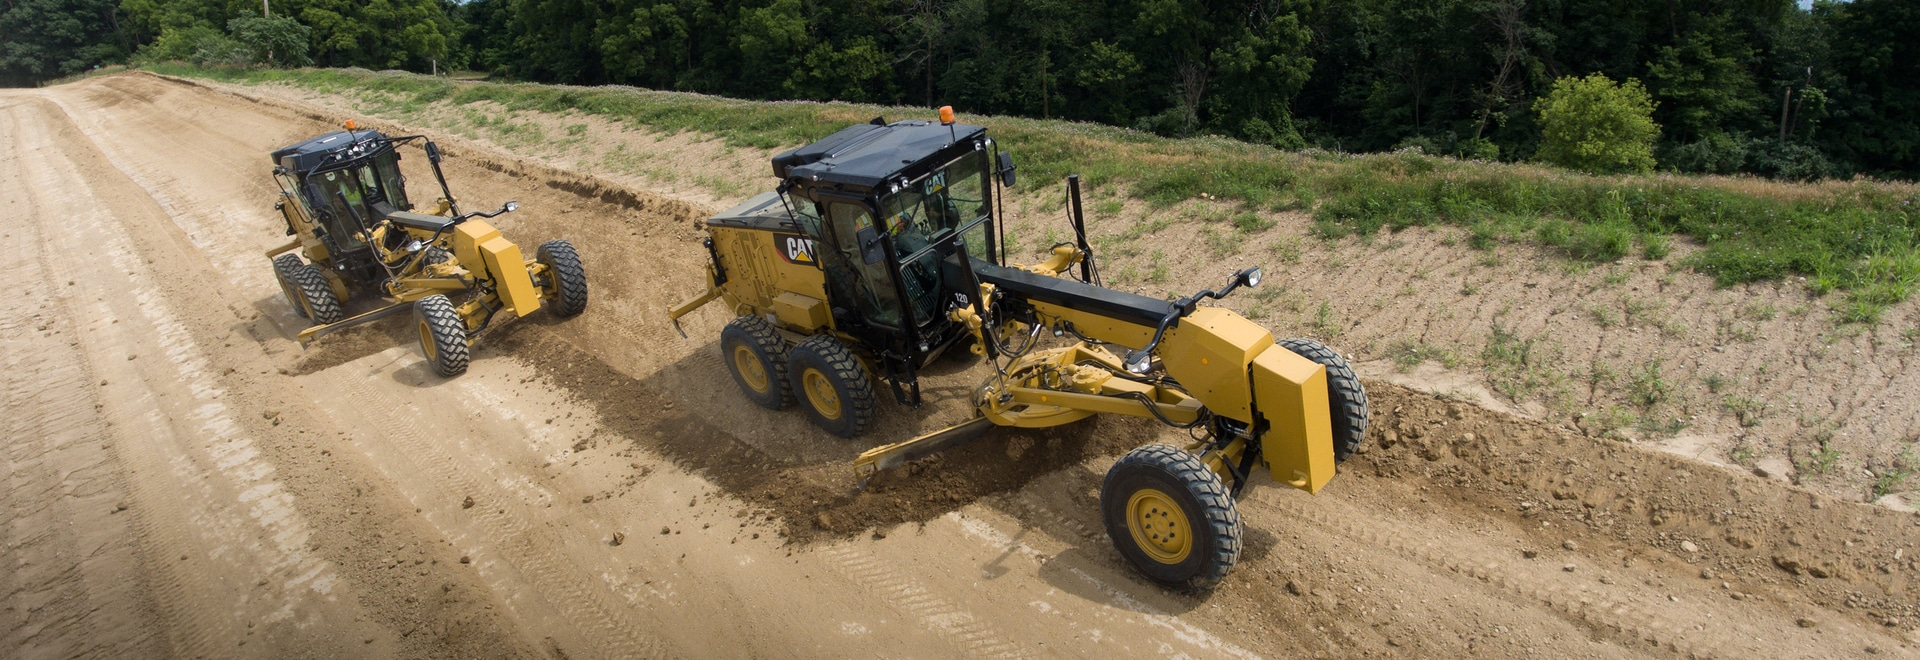 The Cat 120 motor grader has two different cab styles, one for wheel/lever controls (right) and another for the joystick controls (left).